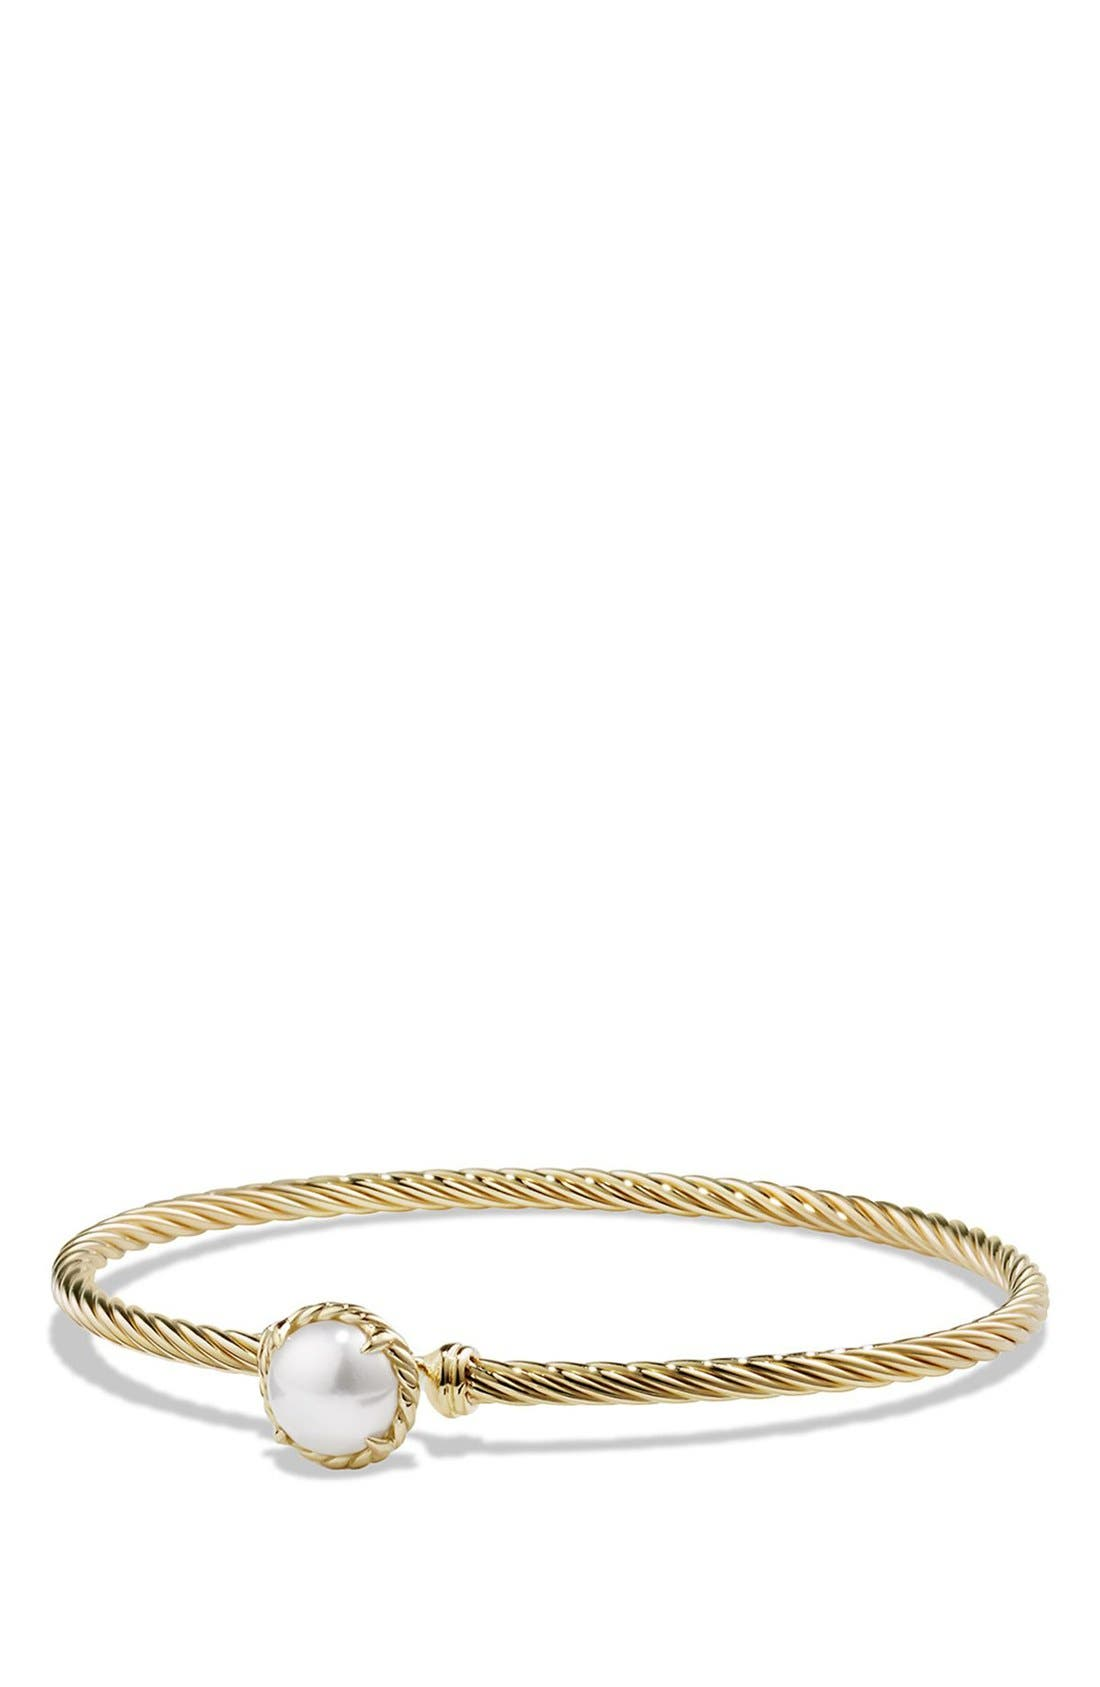 DAVID YURMAN Châtelaine Bracelet with Garnet in 18K Gold